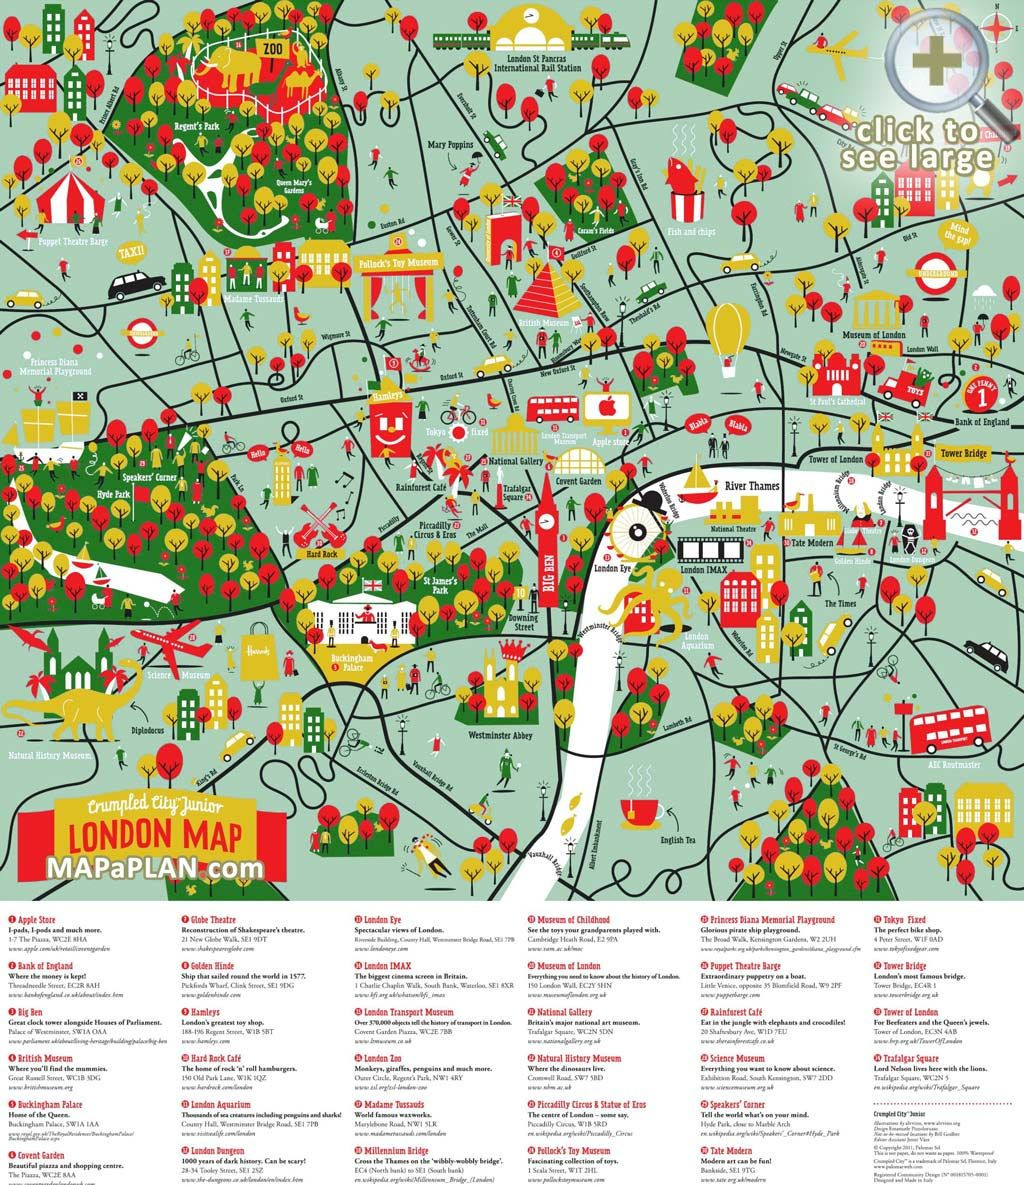 Printable Map Paris Lovely London Maps top tourist attractions Free Printable City Maps